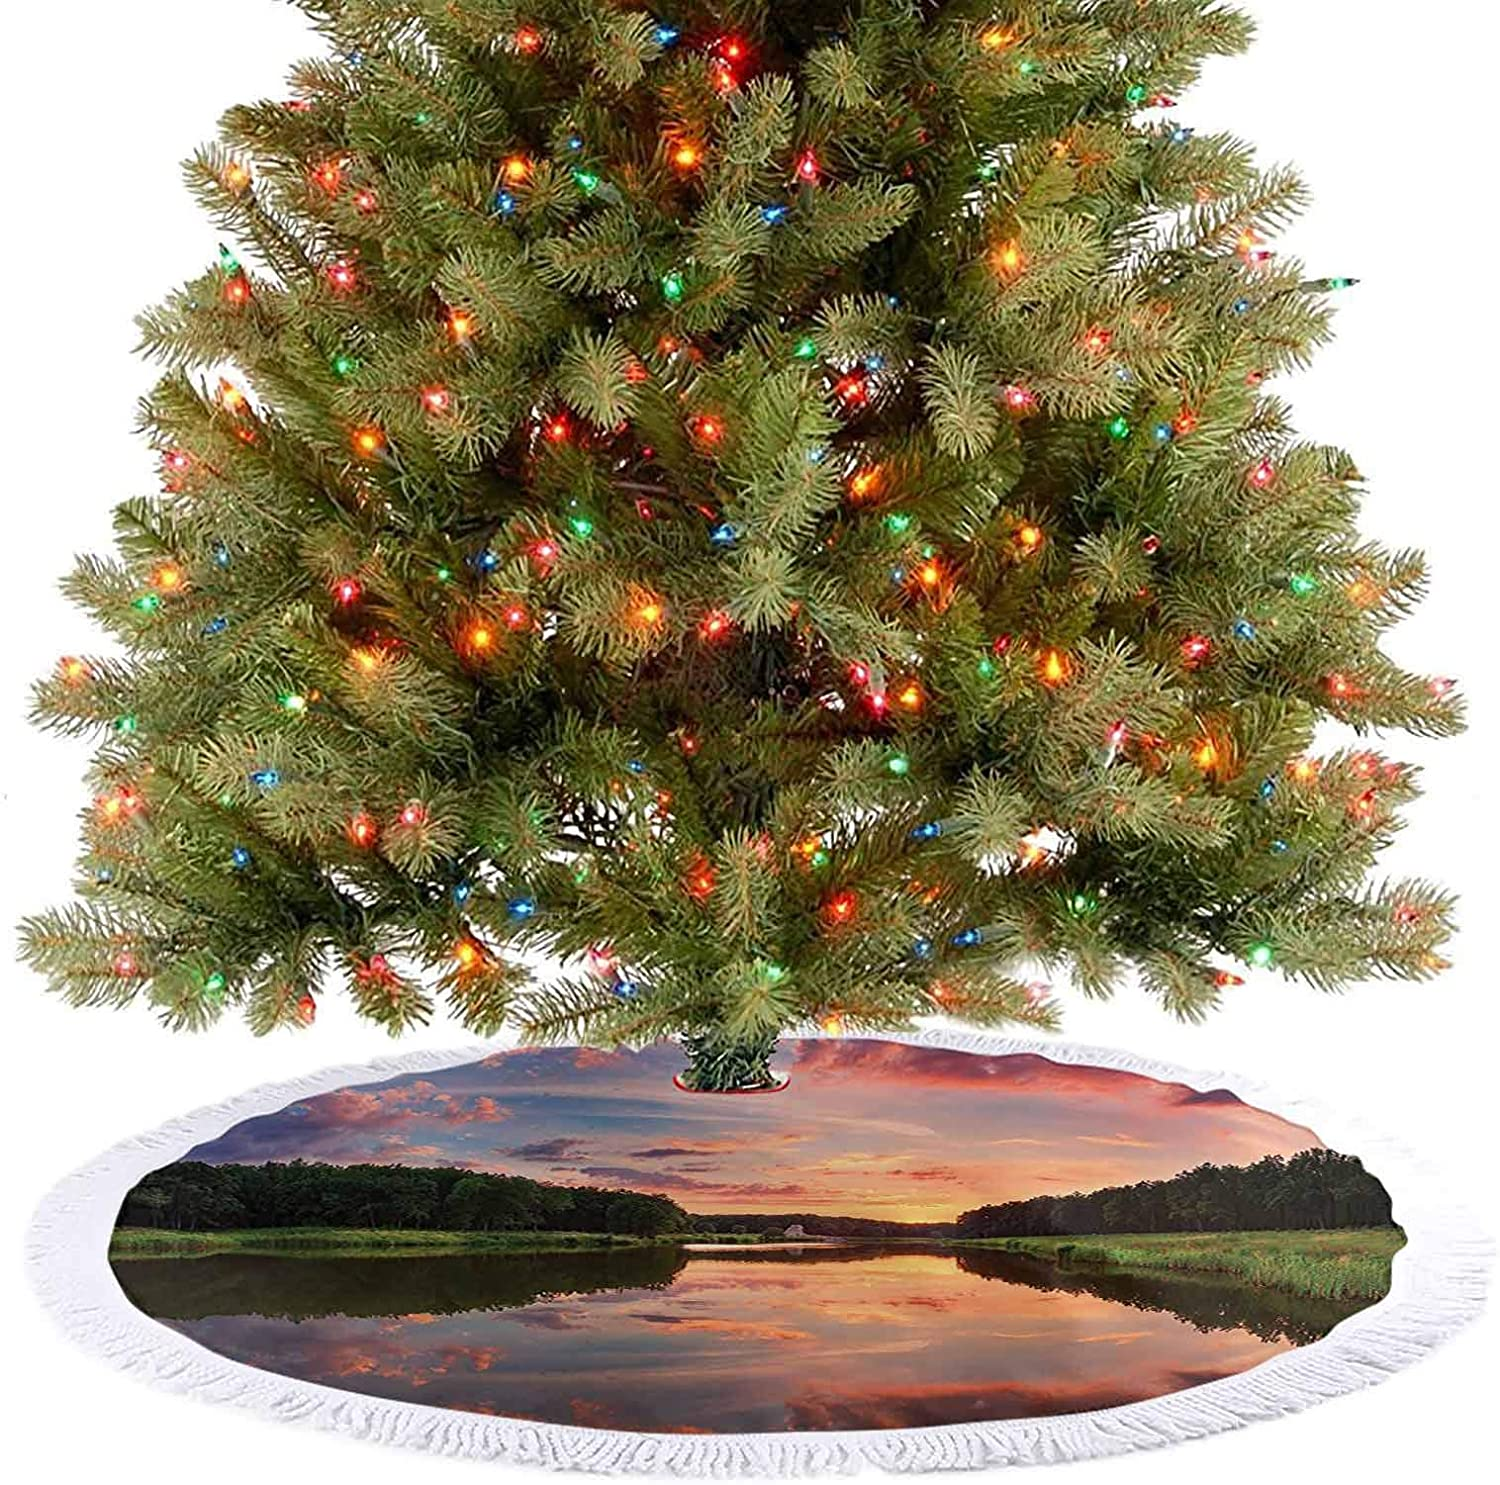 Tree Skirt Scenic Picture with Reflection and Sunset Landscape Picture Accessories Blue Green O Christmas Holiday Party Decoration, Beautiful Standout Addition - 48 Inch